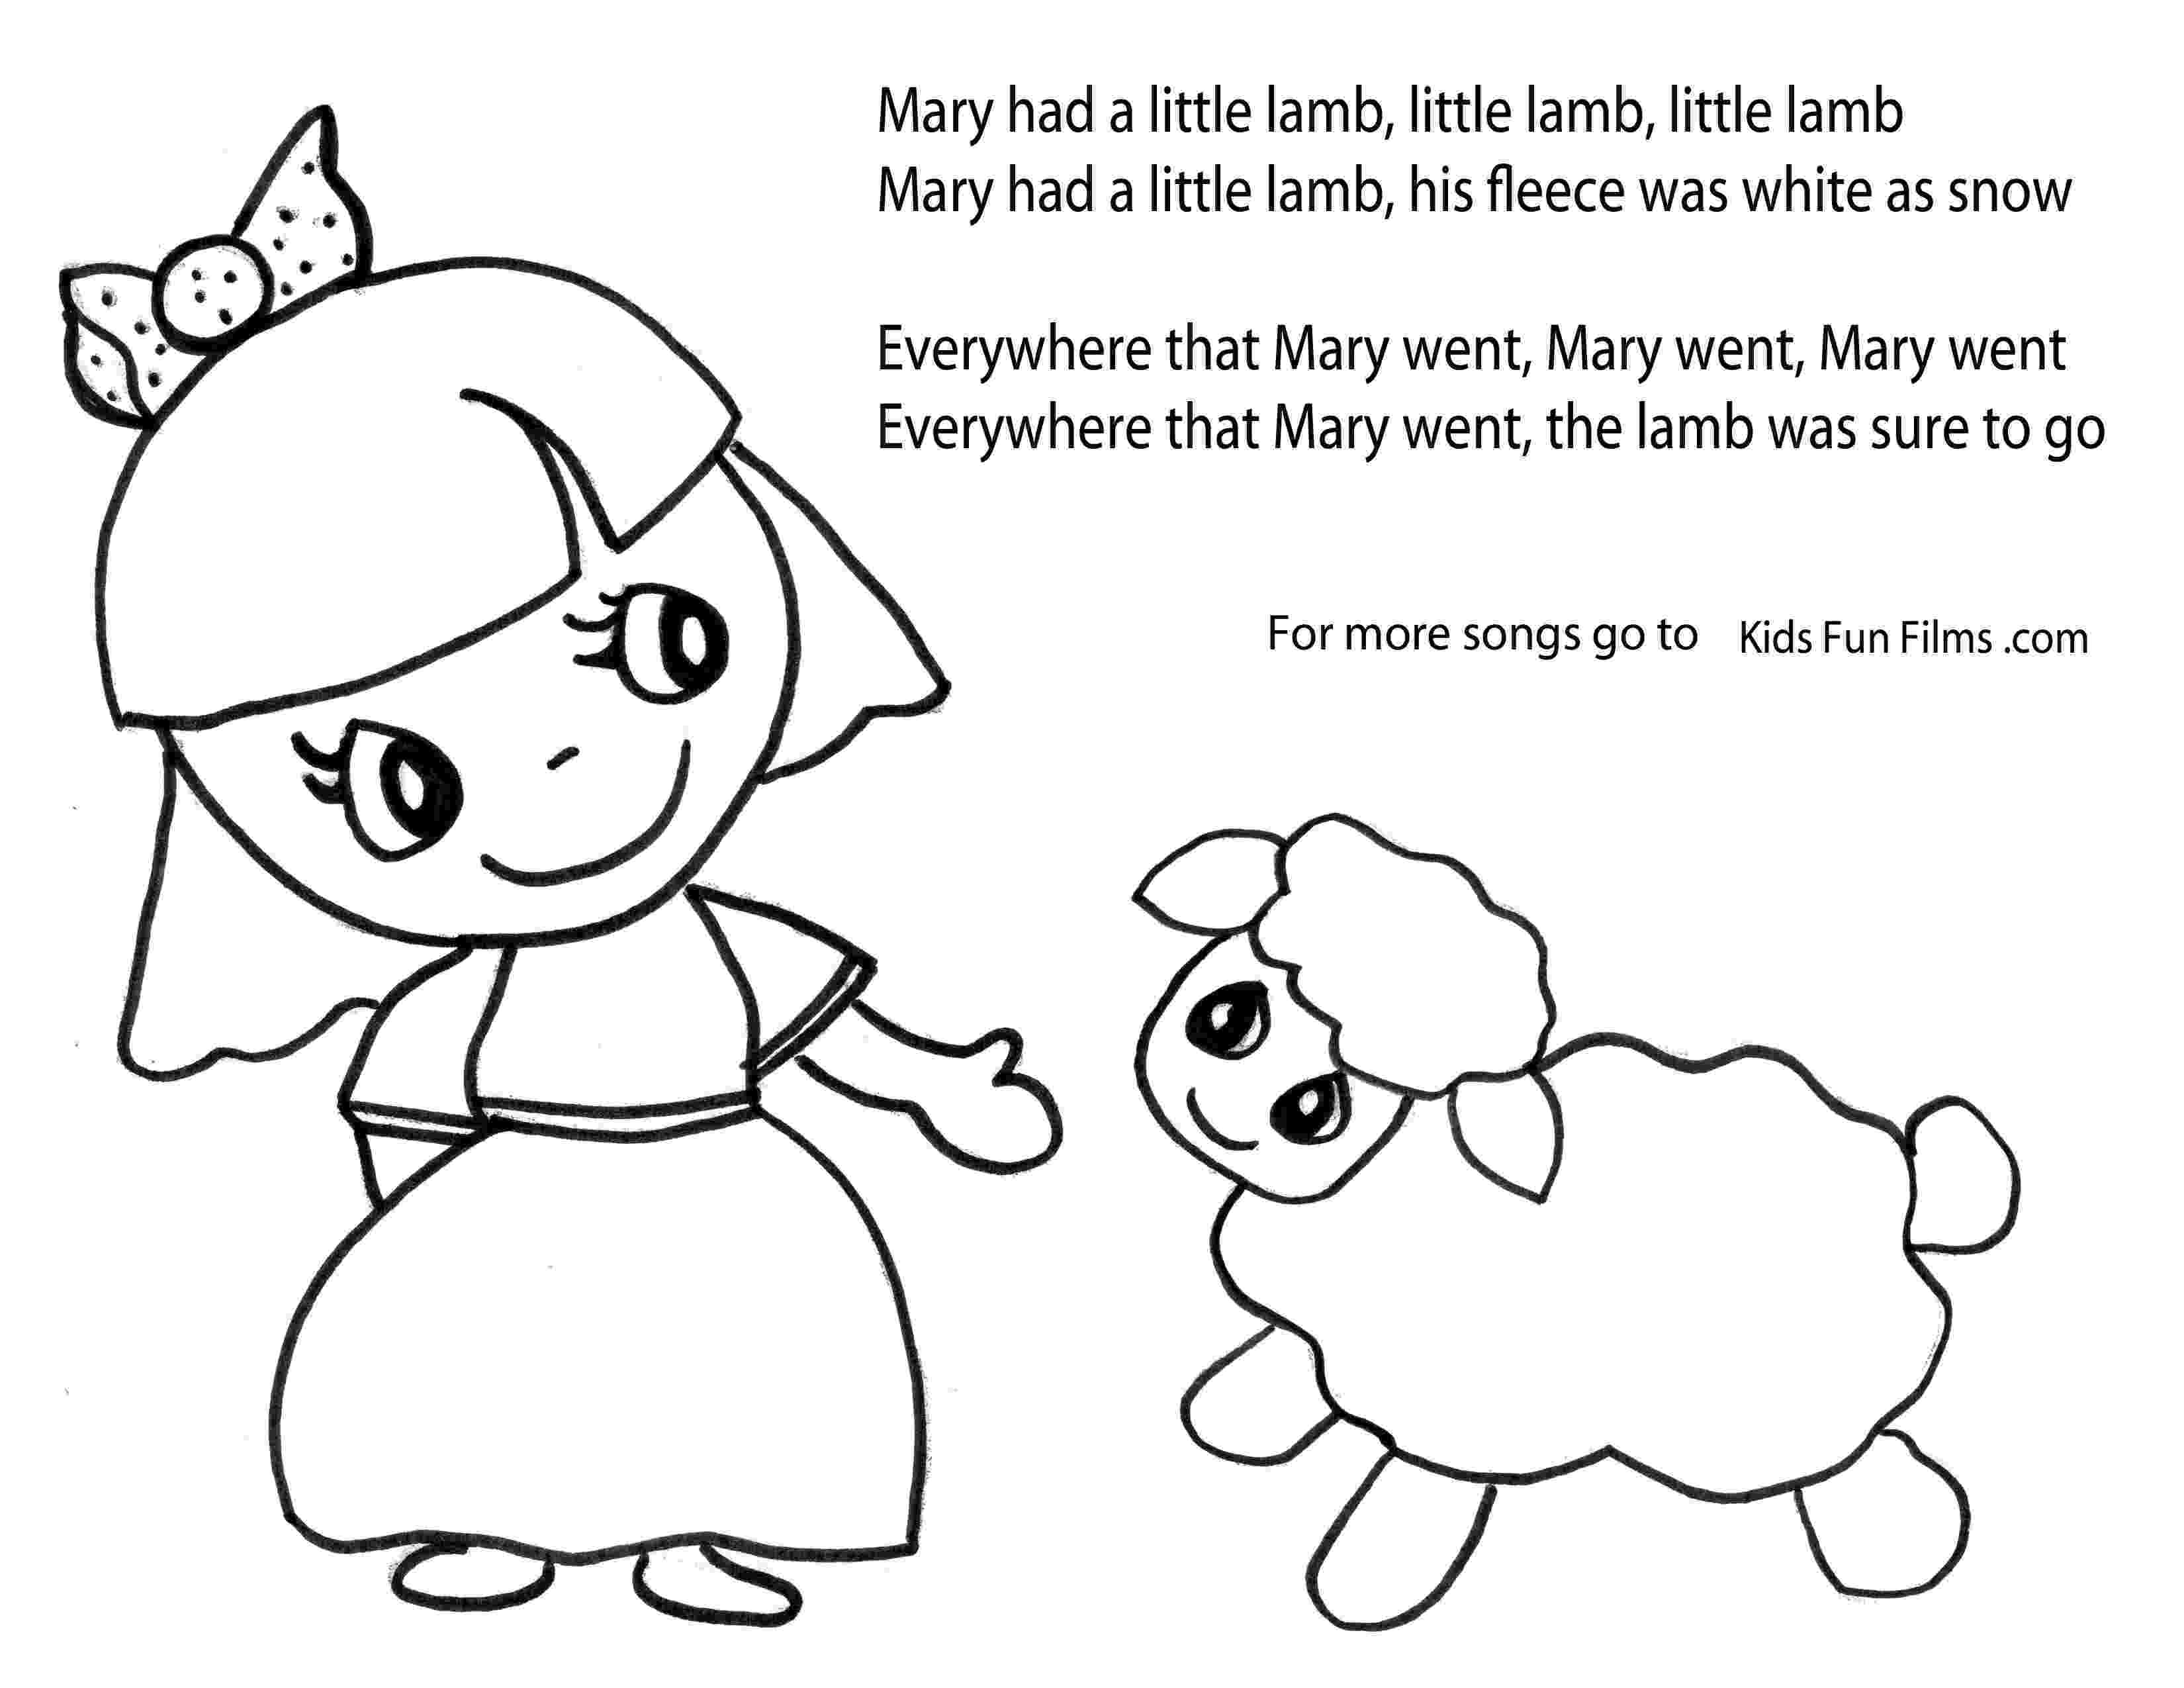 mary had a little lamb coloring page store kids fun films lamb a page mary had coloring little